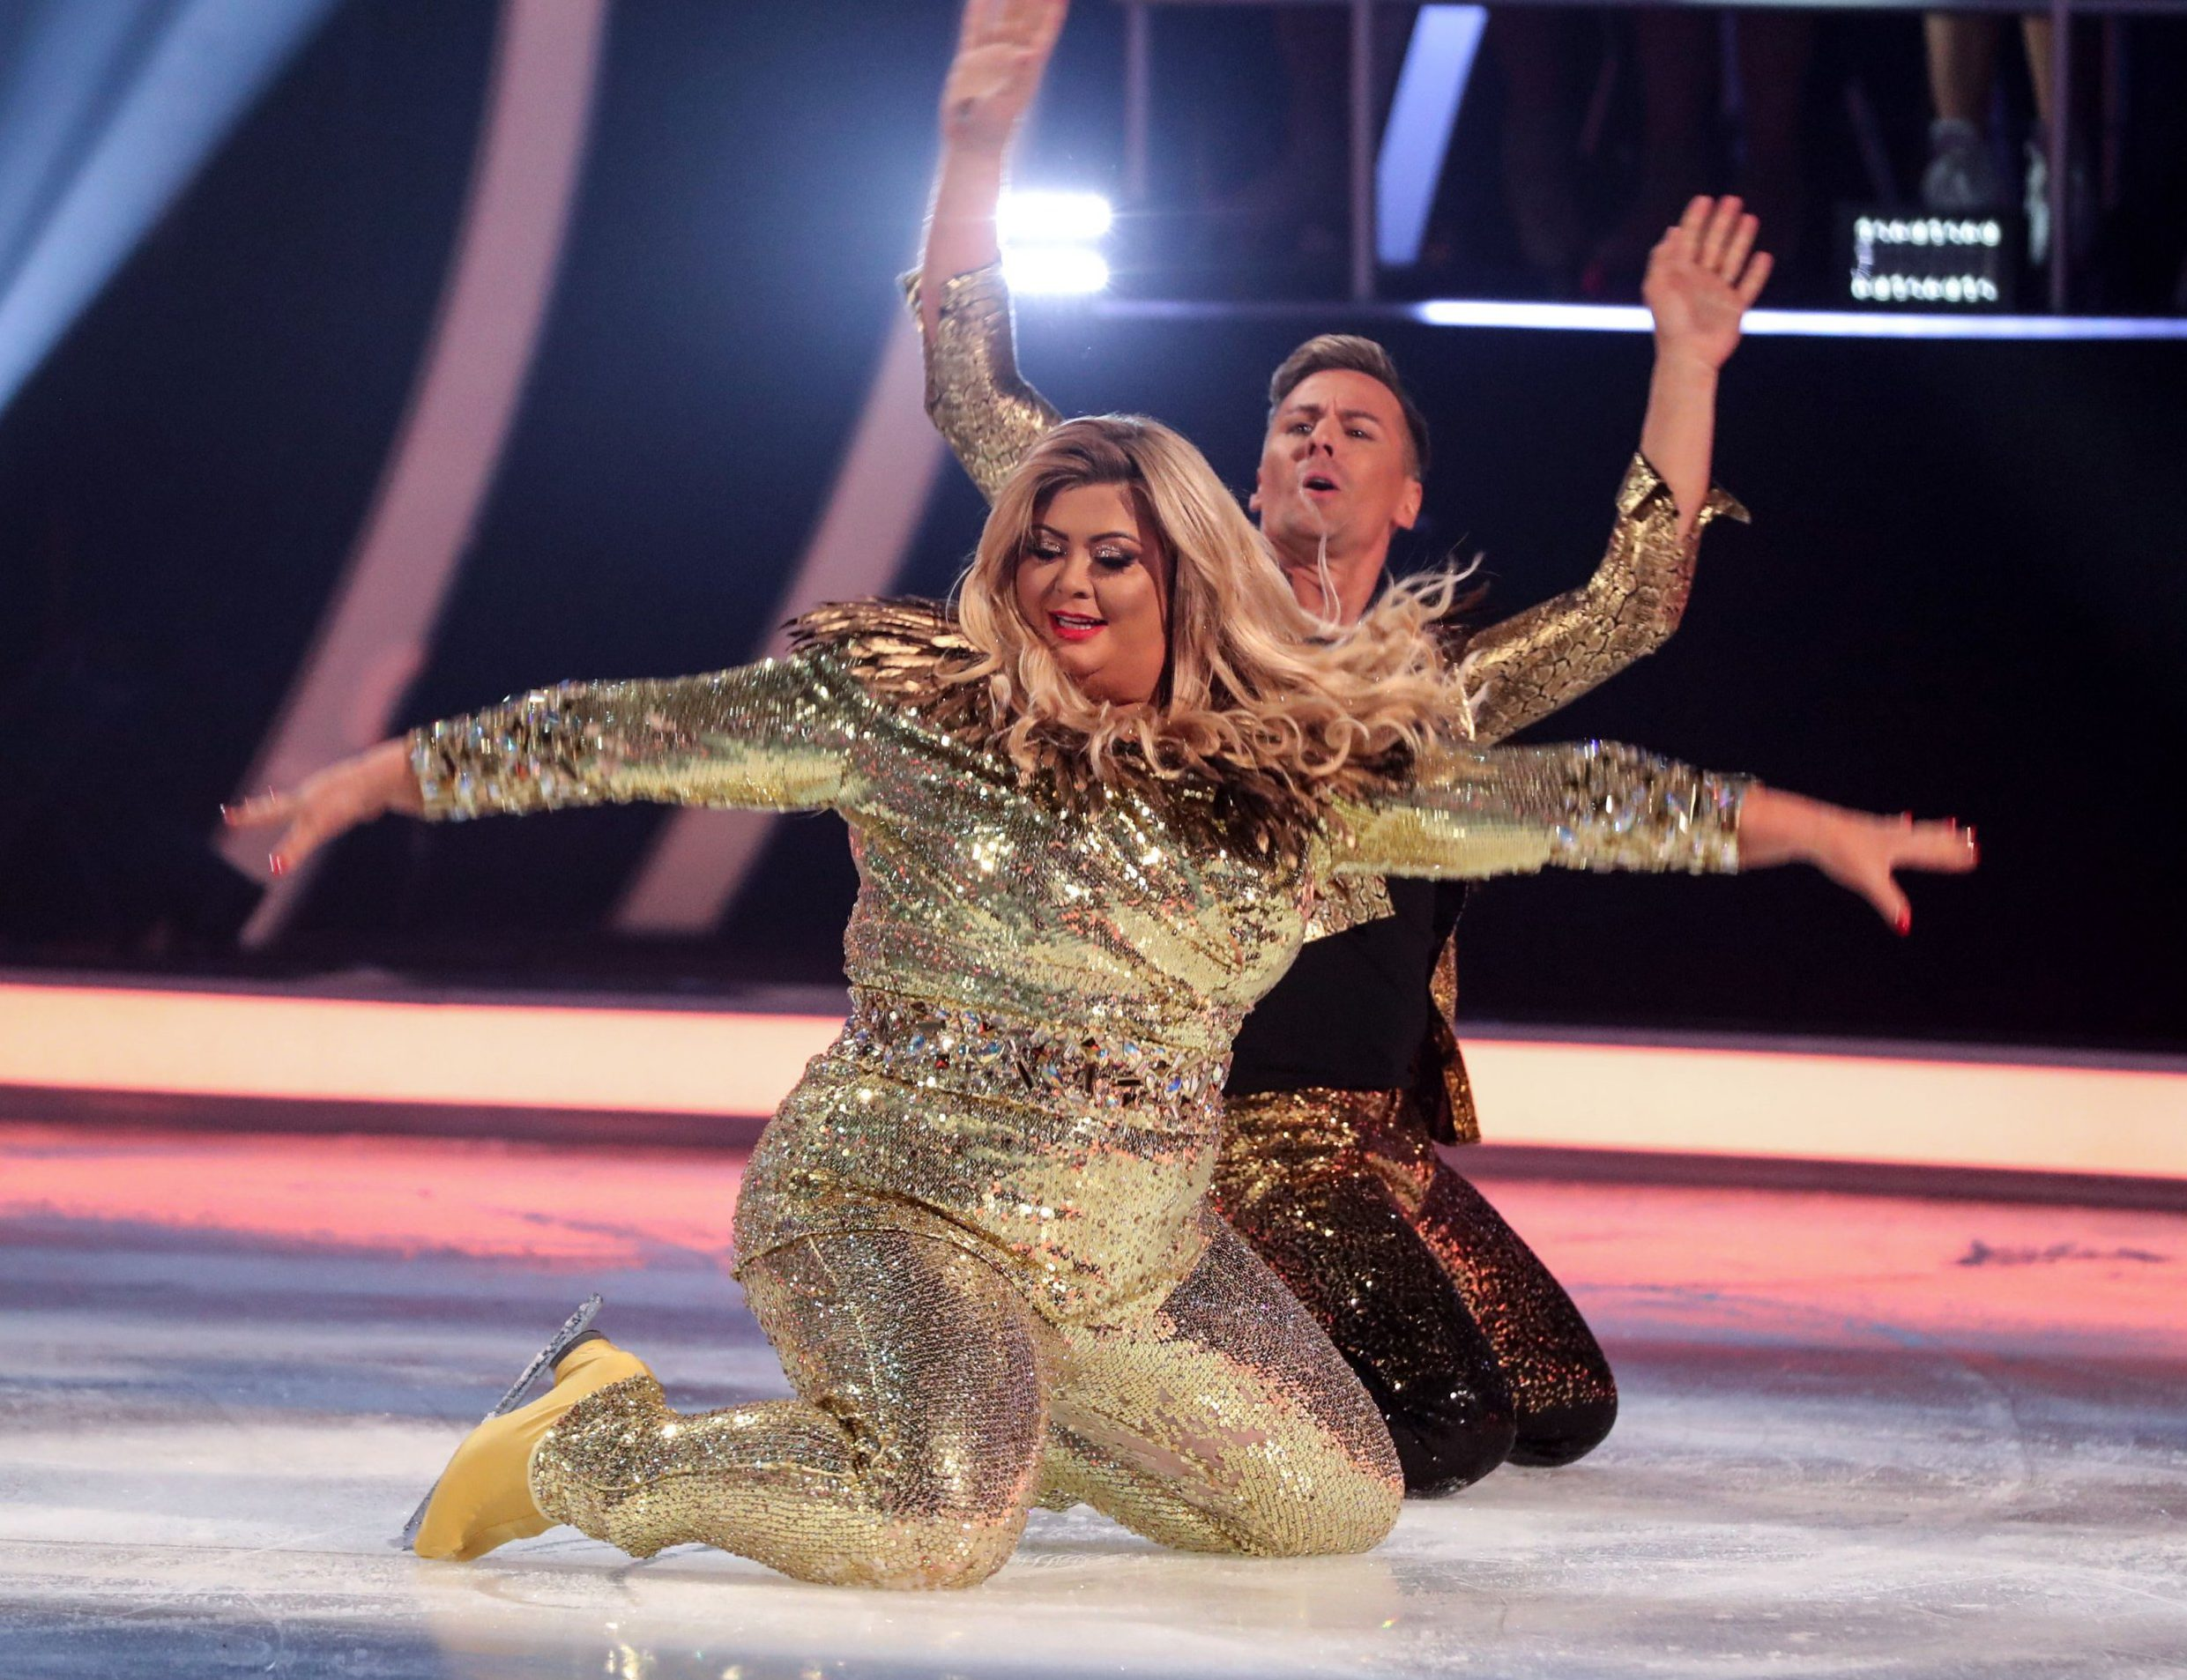 Editorial use only Mandatory Credit: Photo by Matt Frost/ITV/REX (10048681bh) Gemma Collins and Matt Evers 'Dancing on Ice' TV show, Series 11, Episode 1, Hertfordshire, UK - 06 Jan 2019